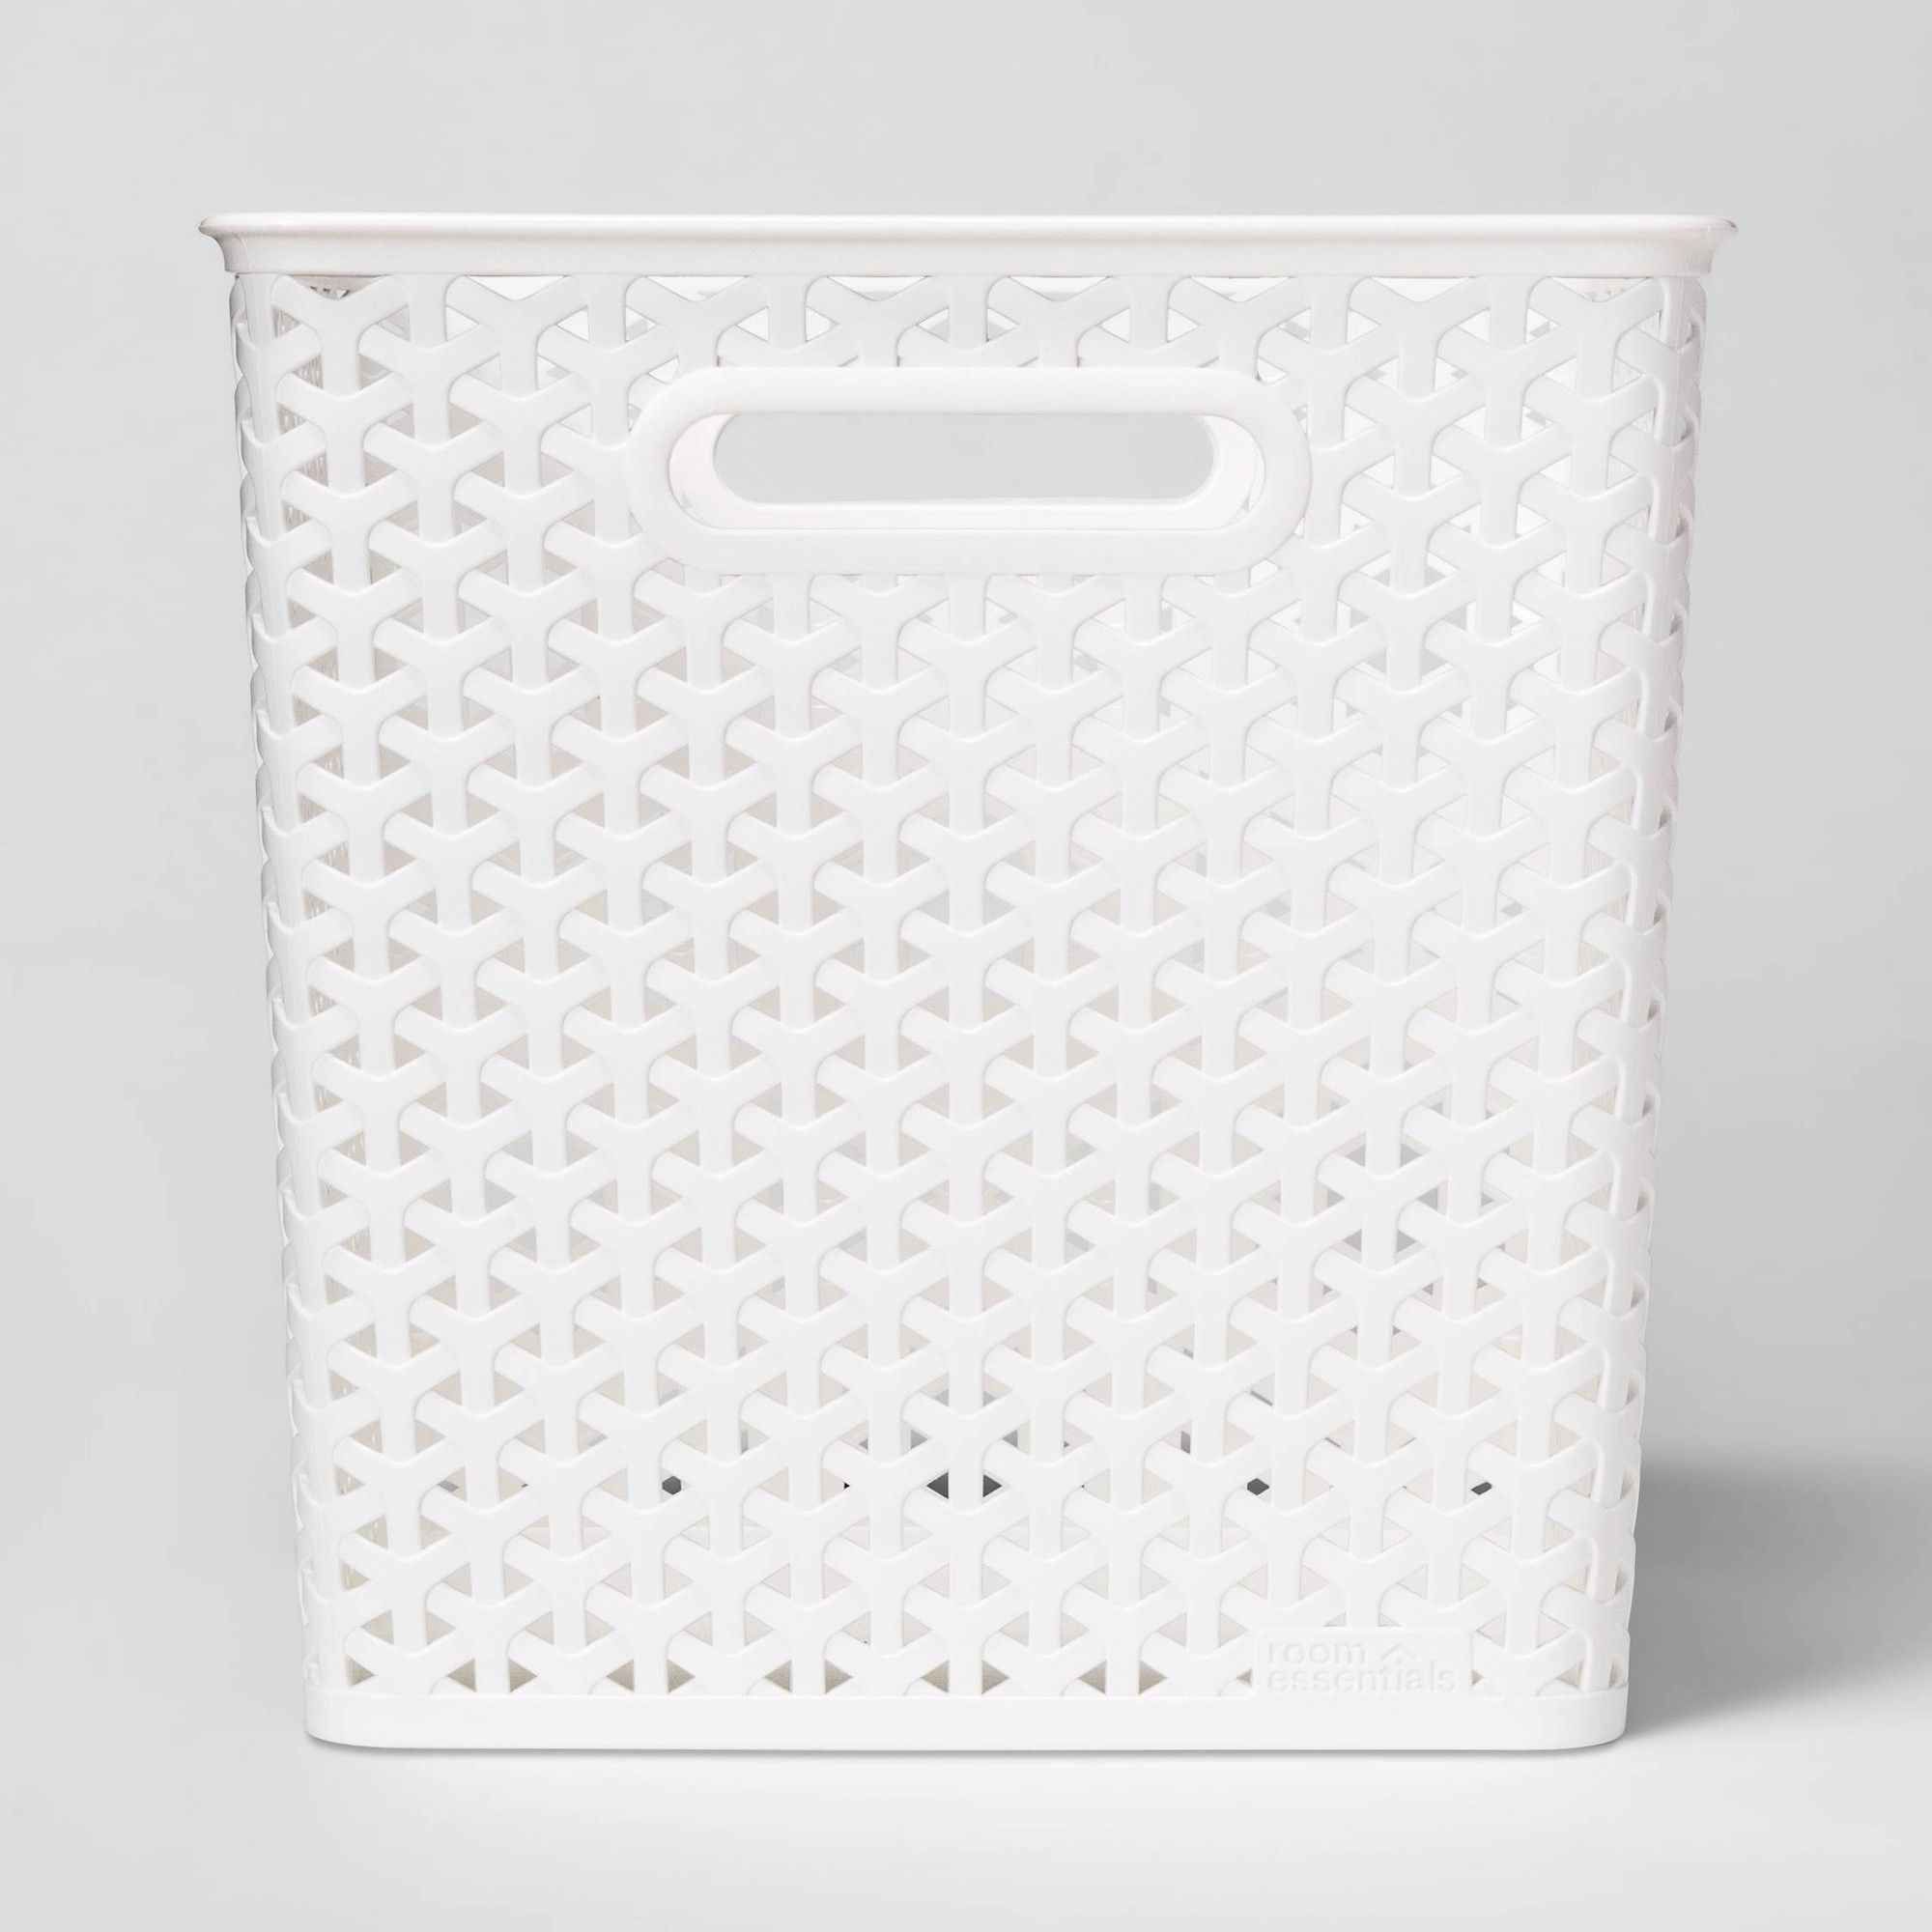 Y Weave Basket Bin White 11 Room Essentials Basket Weaving Room Essentials Basket Labels